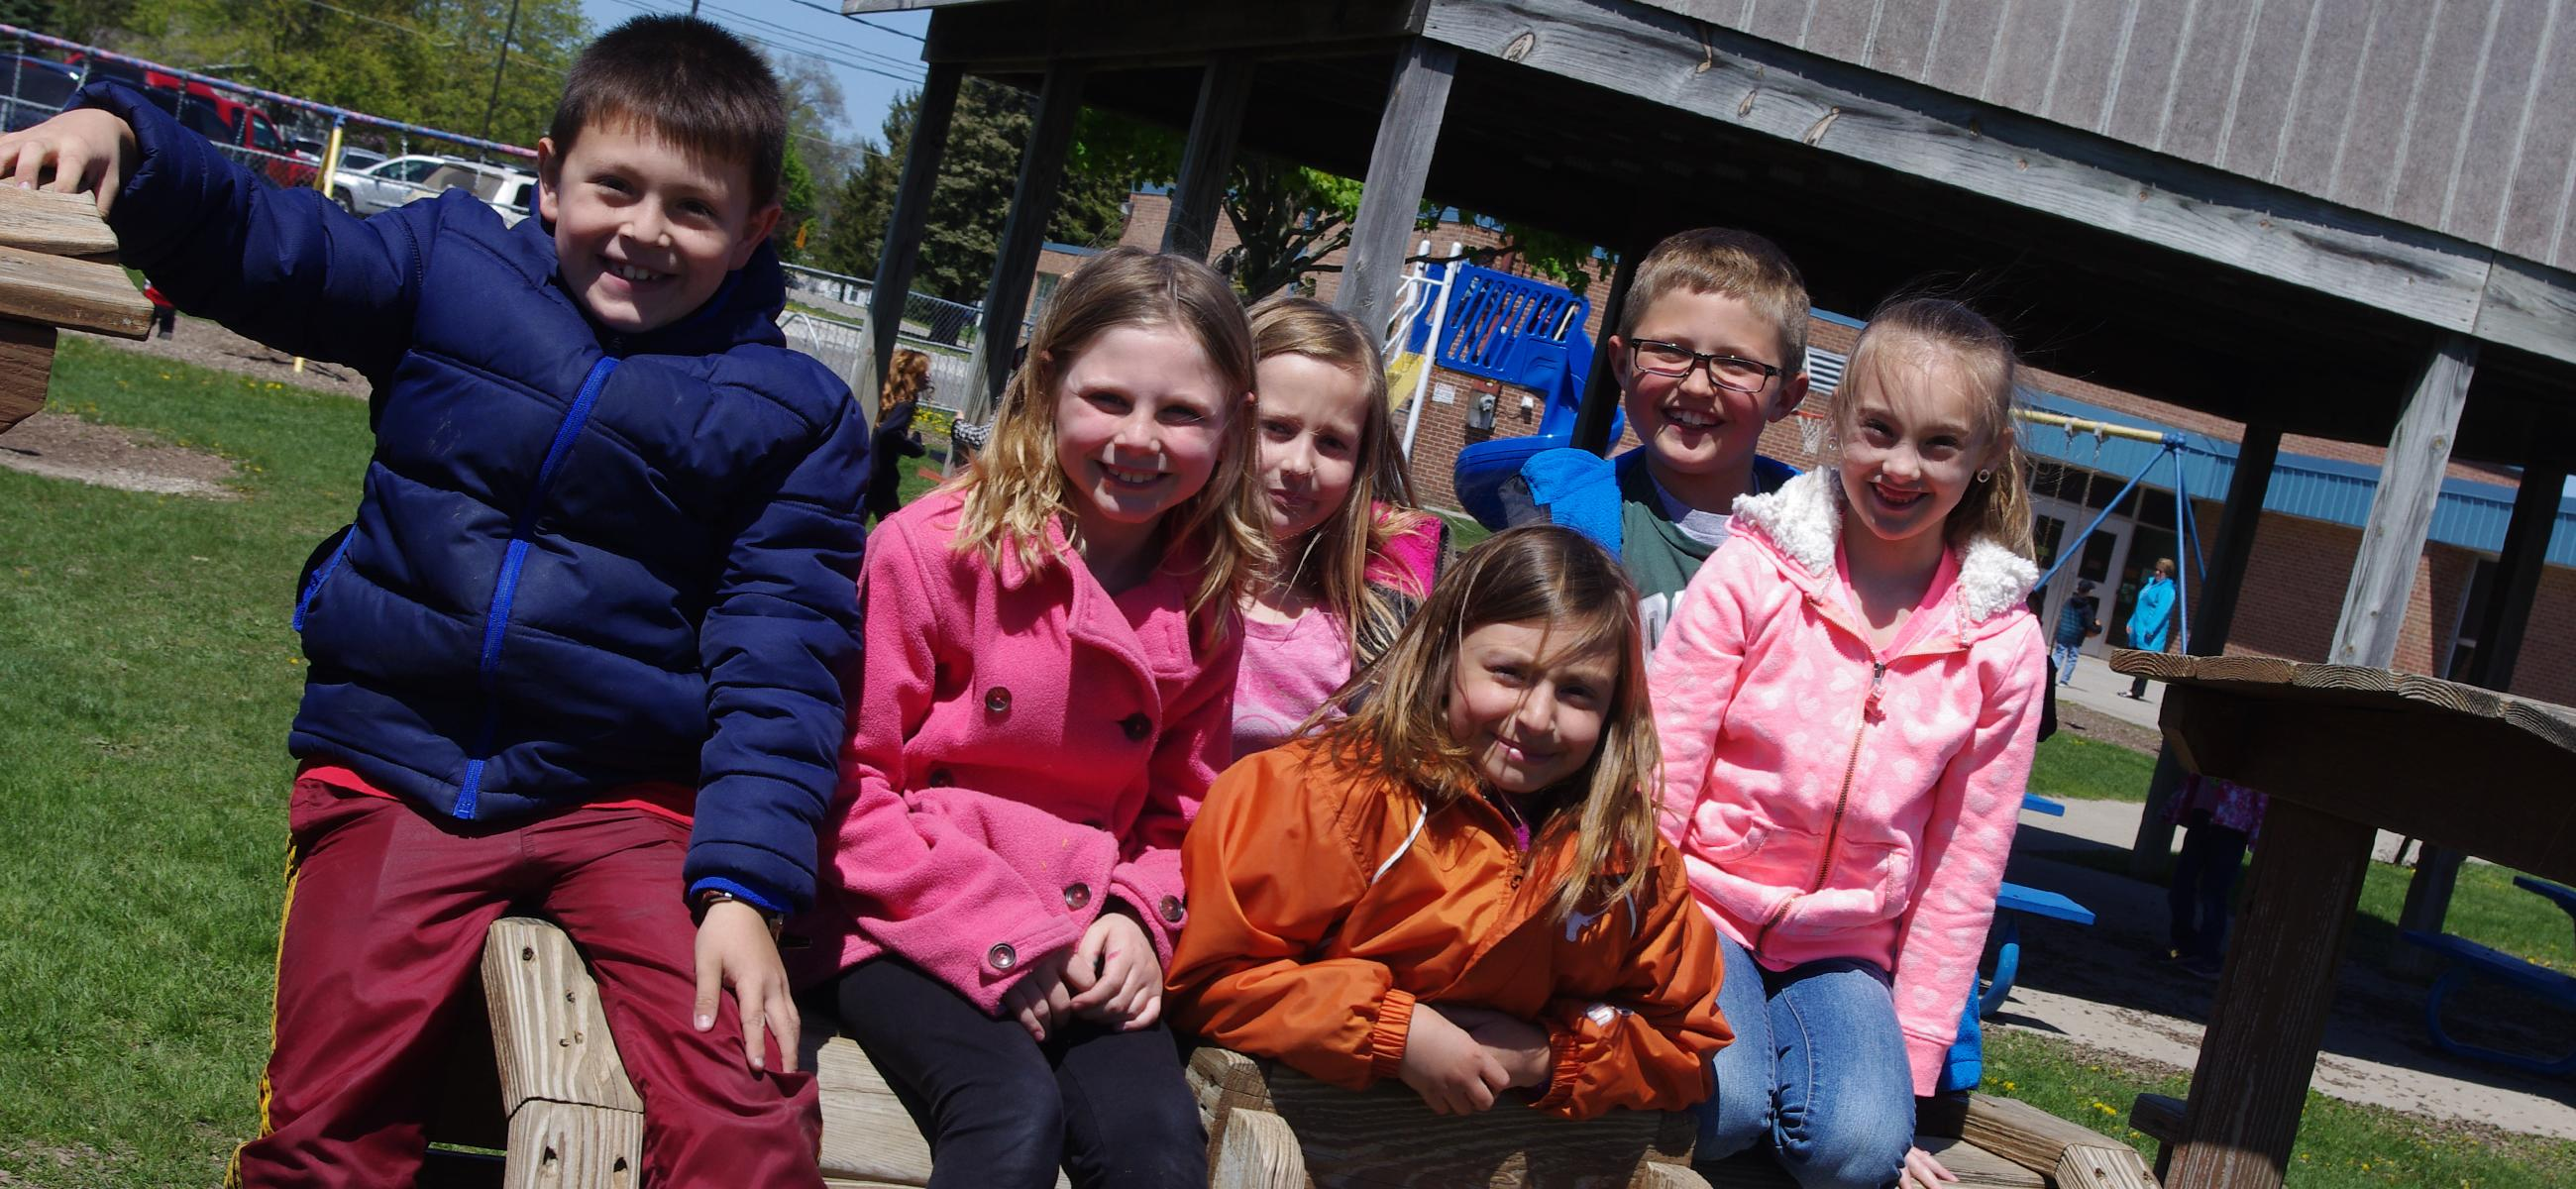 Students outside on the playground, wearing coats and smiling